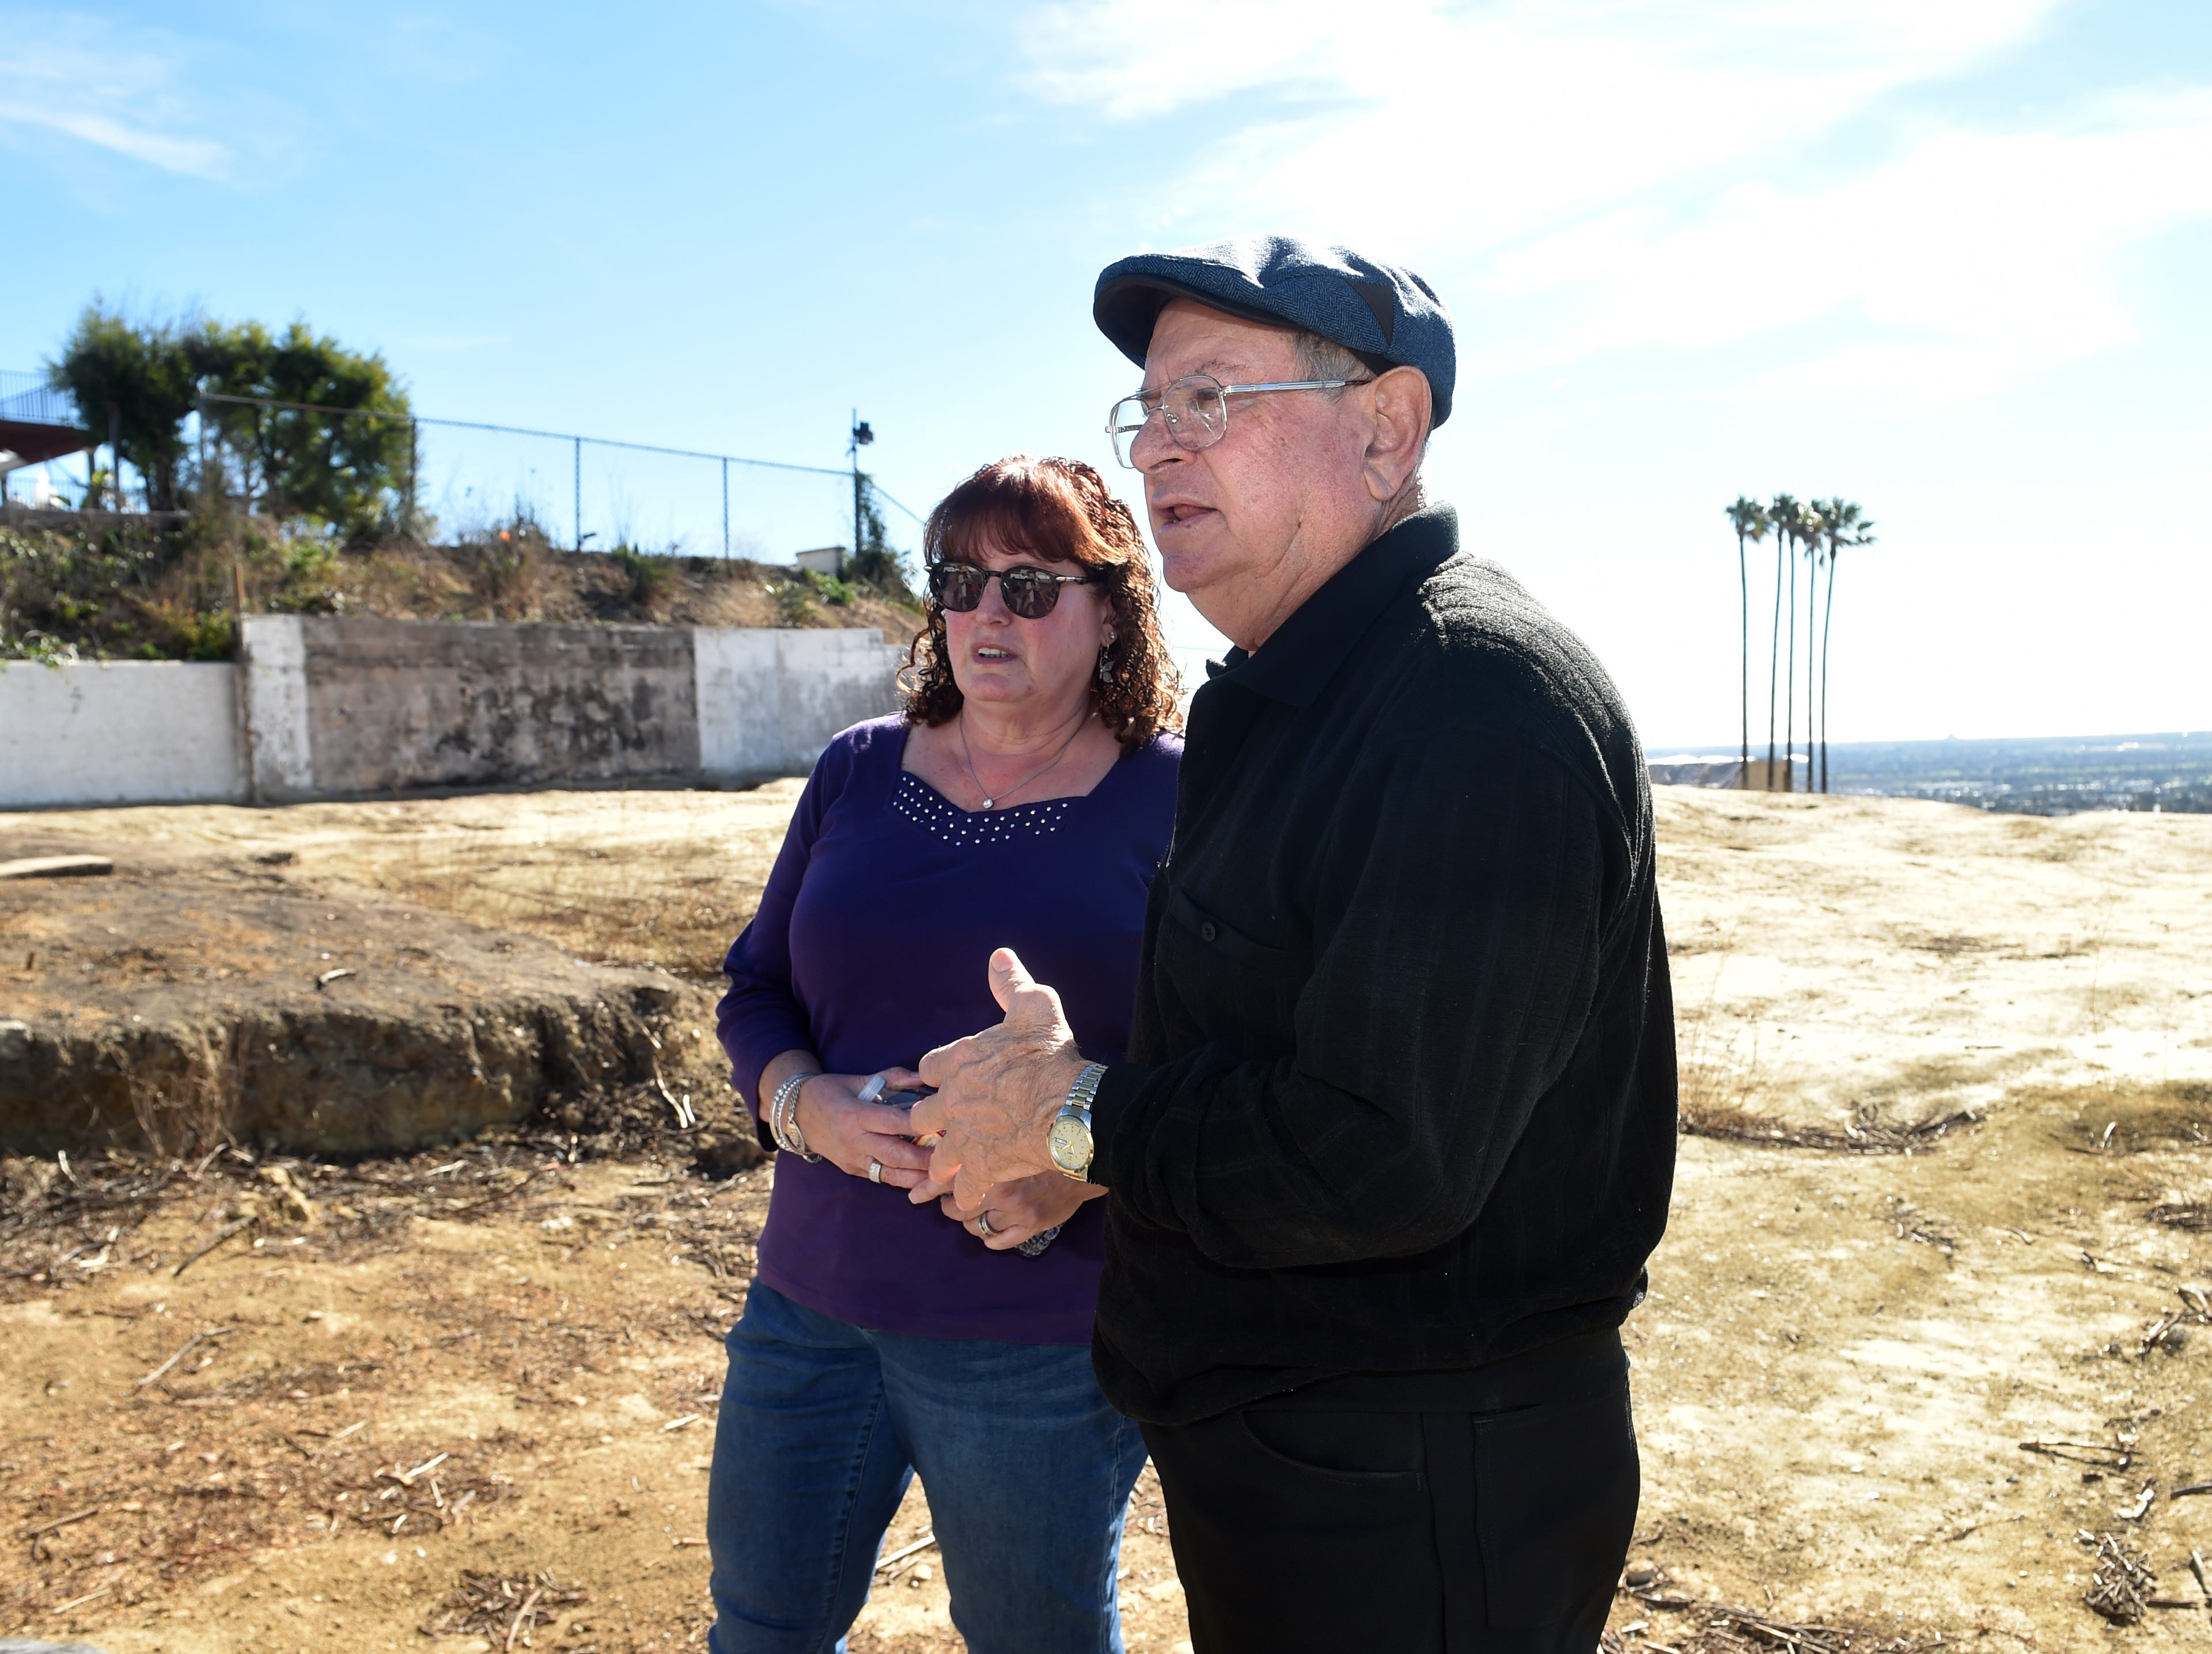 Carl Zaid and his wife, Lisa, of Ventura, visit the lot on Crestone Court where their home burned in the Thomas Fire. Despite issues with contractors and other obstacles, the Zaids plan to rebuild.